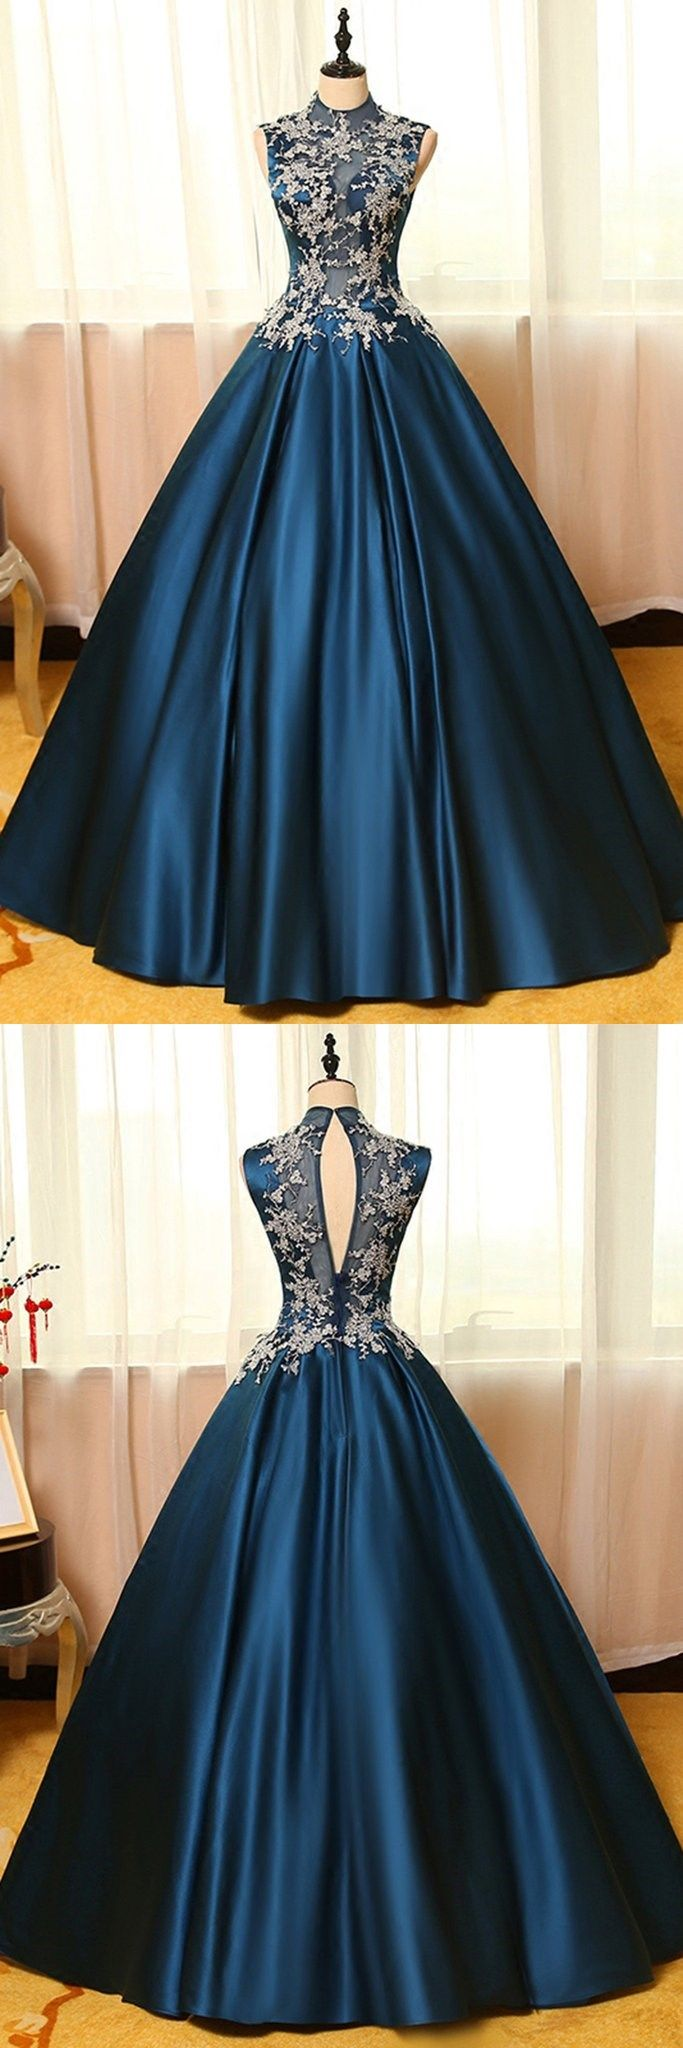 Blue satins lace applique round neck see-through A-line long prom dresses,ball gown dresses #prom #dresses #longpromdress #promdress #eveningdress #promdresses #partydresses #2018promdresses #ballgown #eveninggown #promgown #bluepromdresses